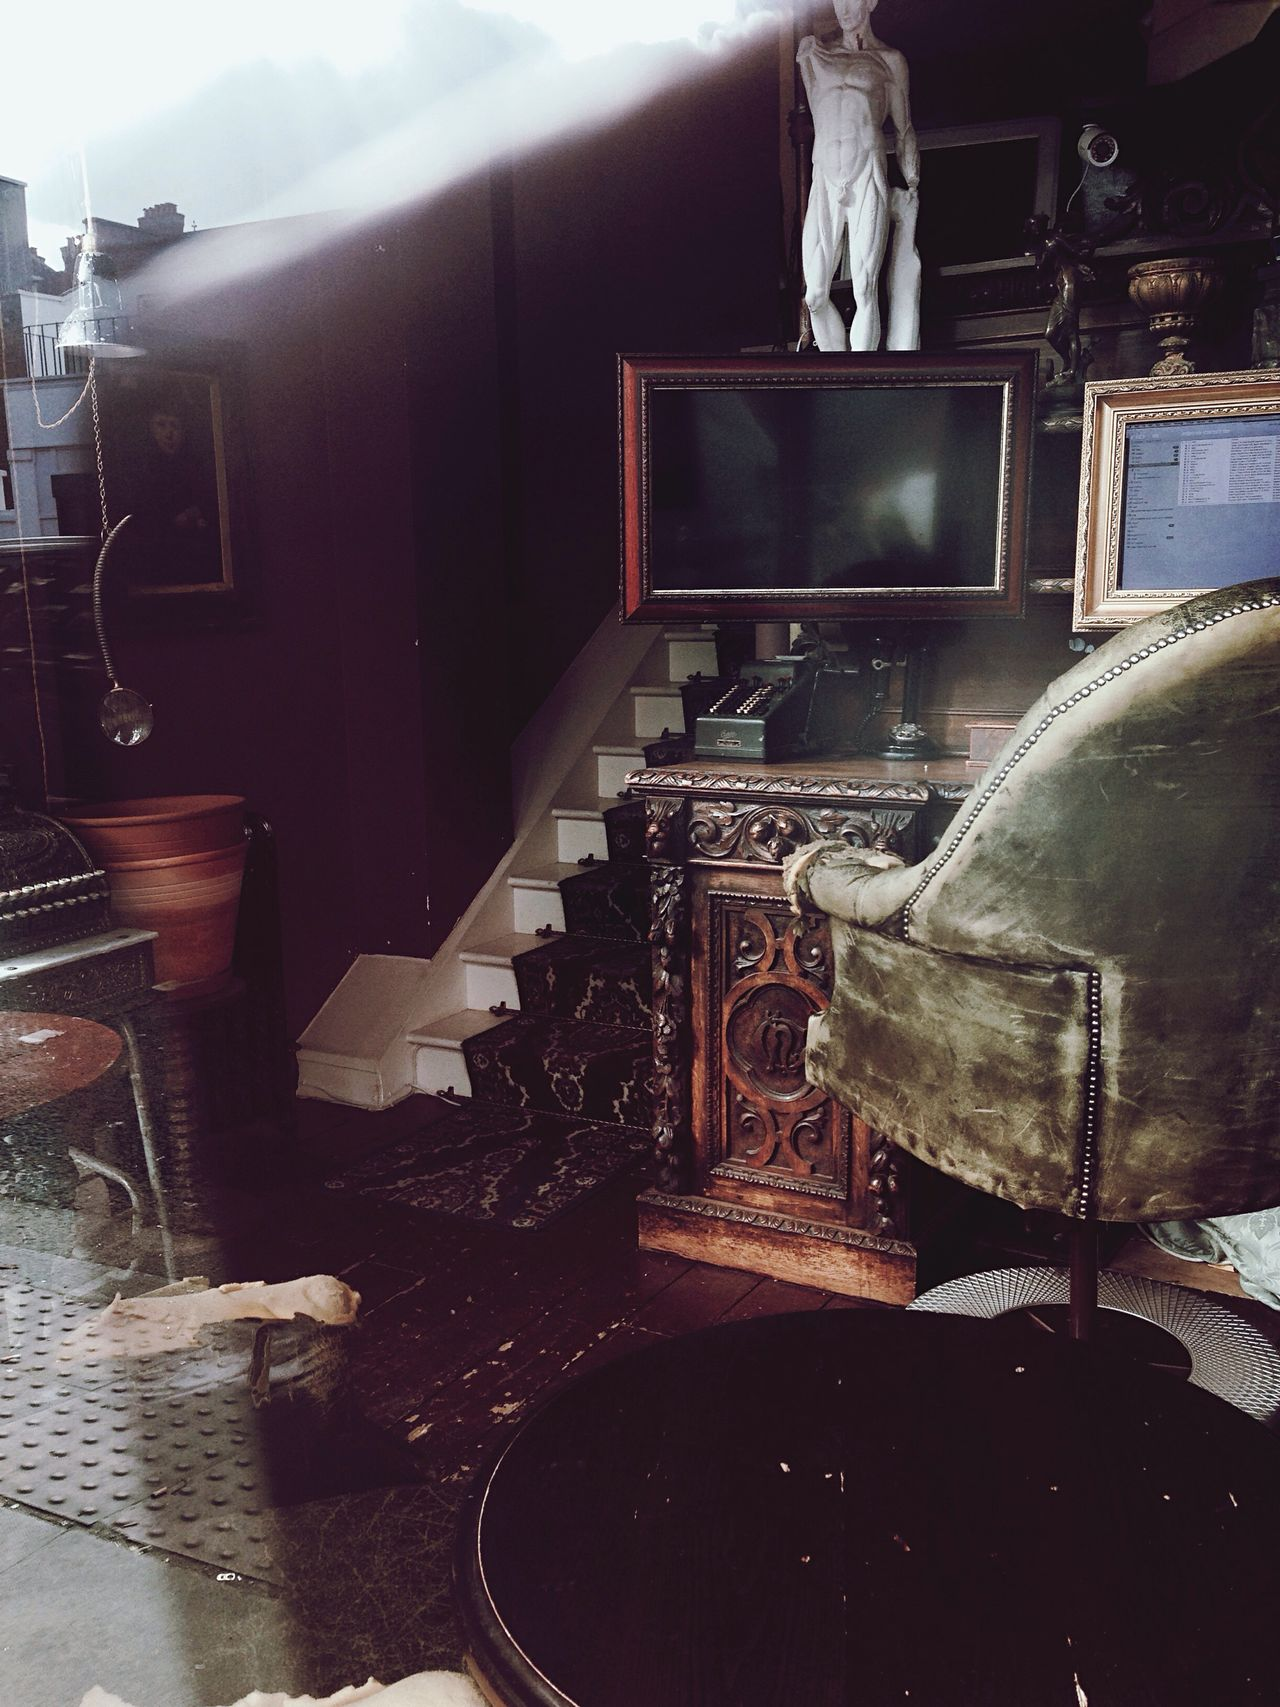 Music Musical Instrument Indoors  Piano Arts Culture And Entertainment Gramophone Old-fashioned No People Musical Equipment Home Interior Living Room Animal Themes Turntable Day Creepy Interior Old Light & Shadow Light And Shadow Abandoned Stories Vintage Bookshelf Indoors